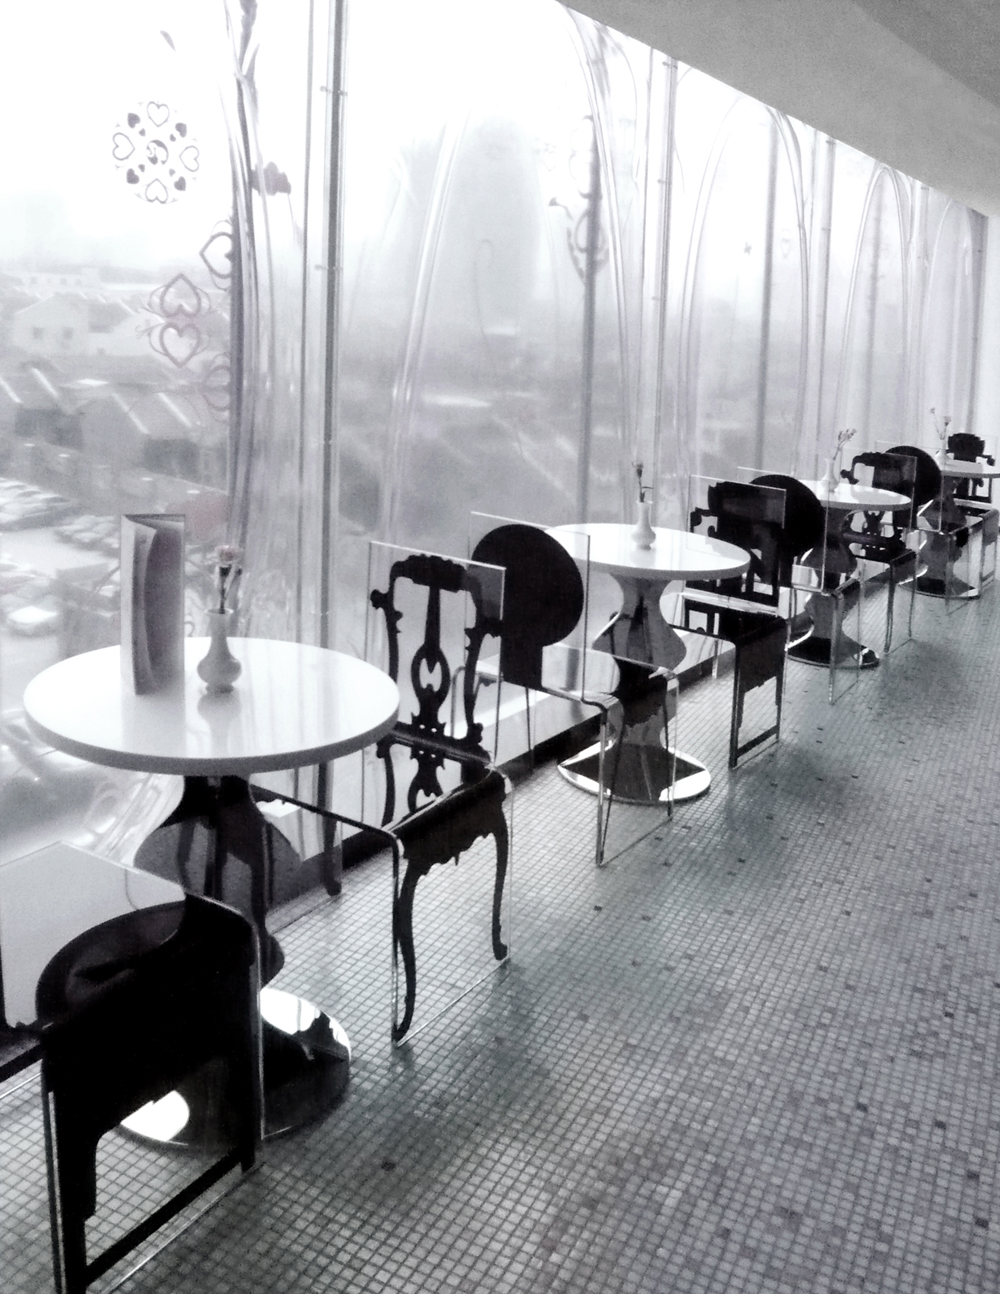 PPT_SIZE_CHAIRS BY WINDOW.jpg